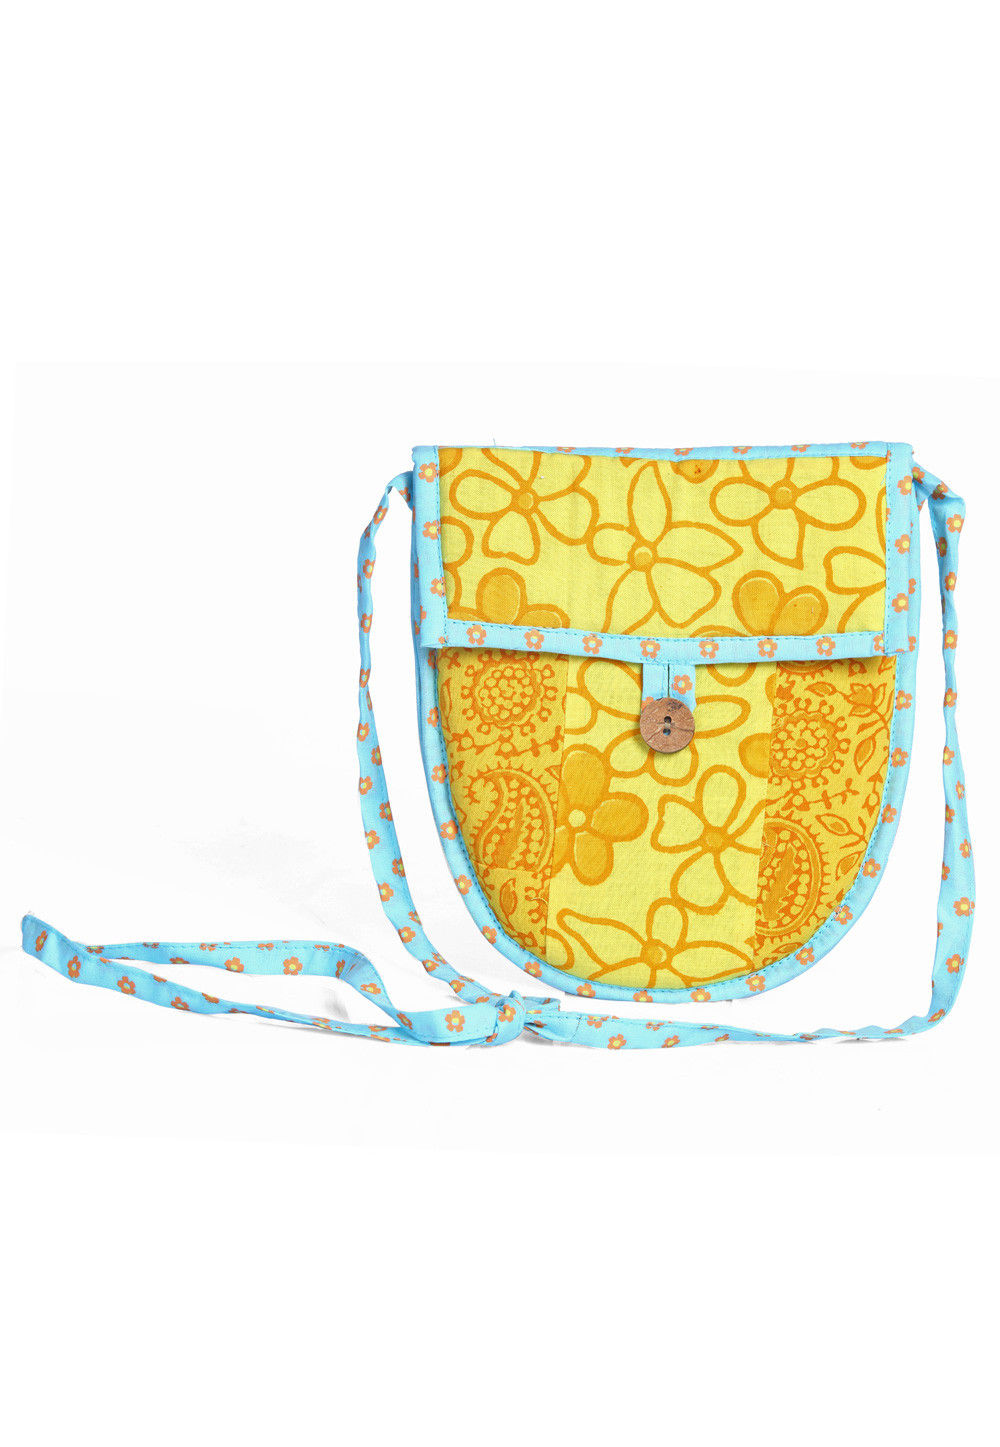 Printed Cotton Sling Bag in Yellow and sky blue